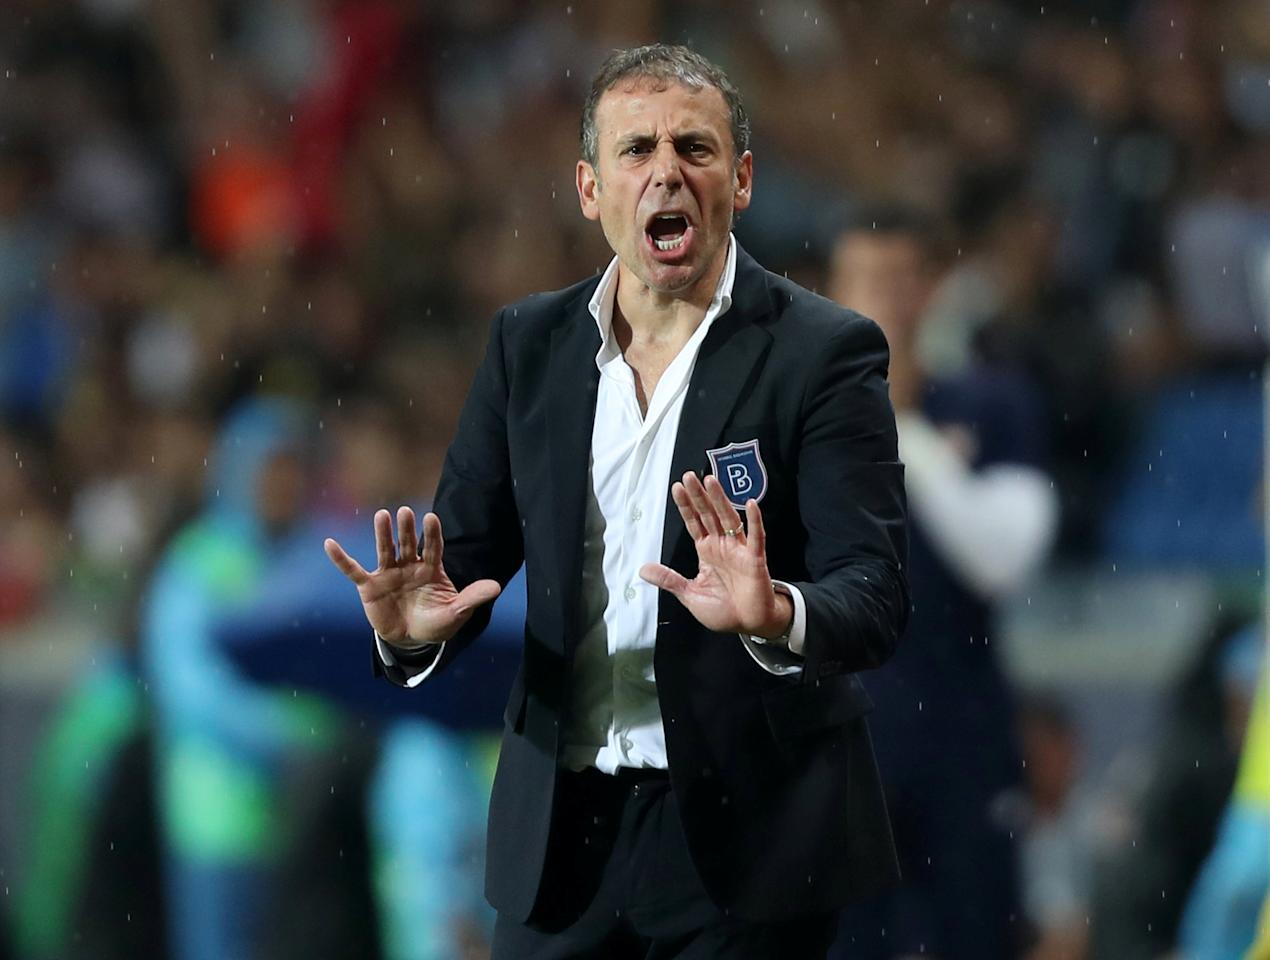 Soccer Football - Champions League - Istanbul Basaksehir vs Sevilla - Qualifying Play-Off First Leg - Istanbul, Turkey - August 16, 2017   Istanbul Basaksehir coach Abdullah Avci   REUTERS/Osman Orsal